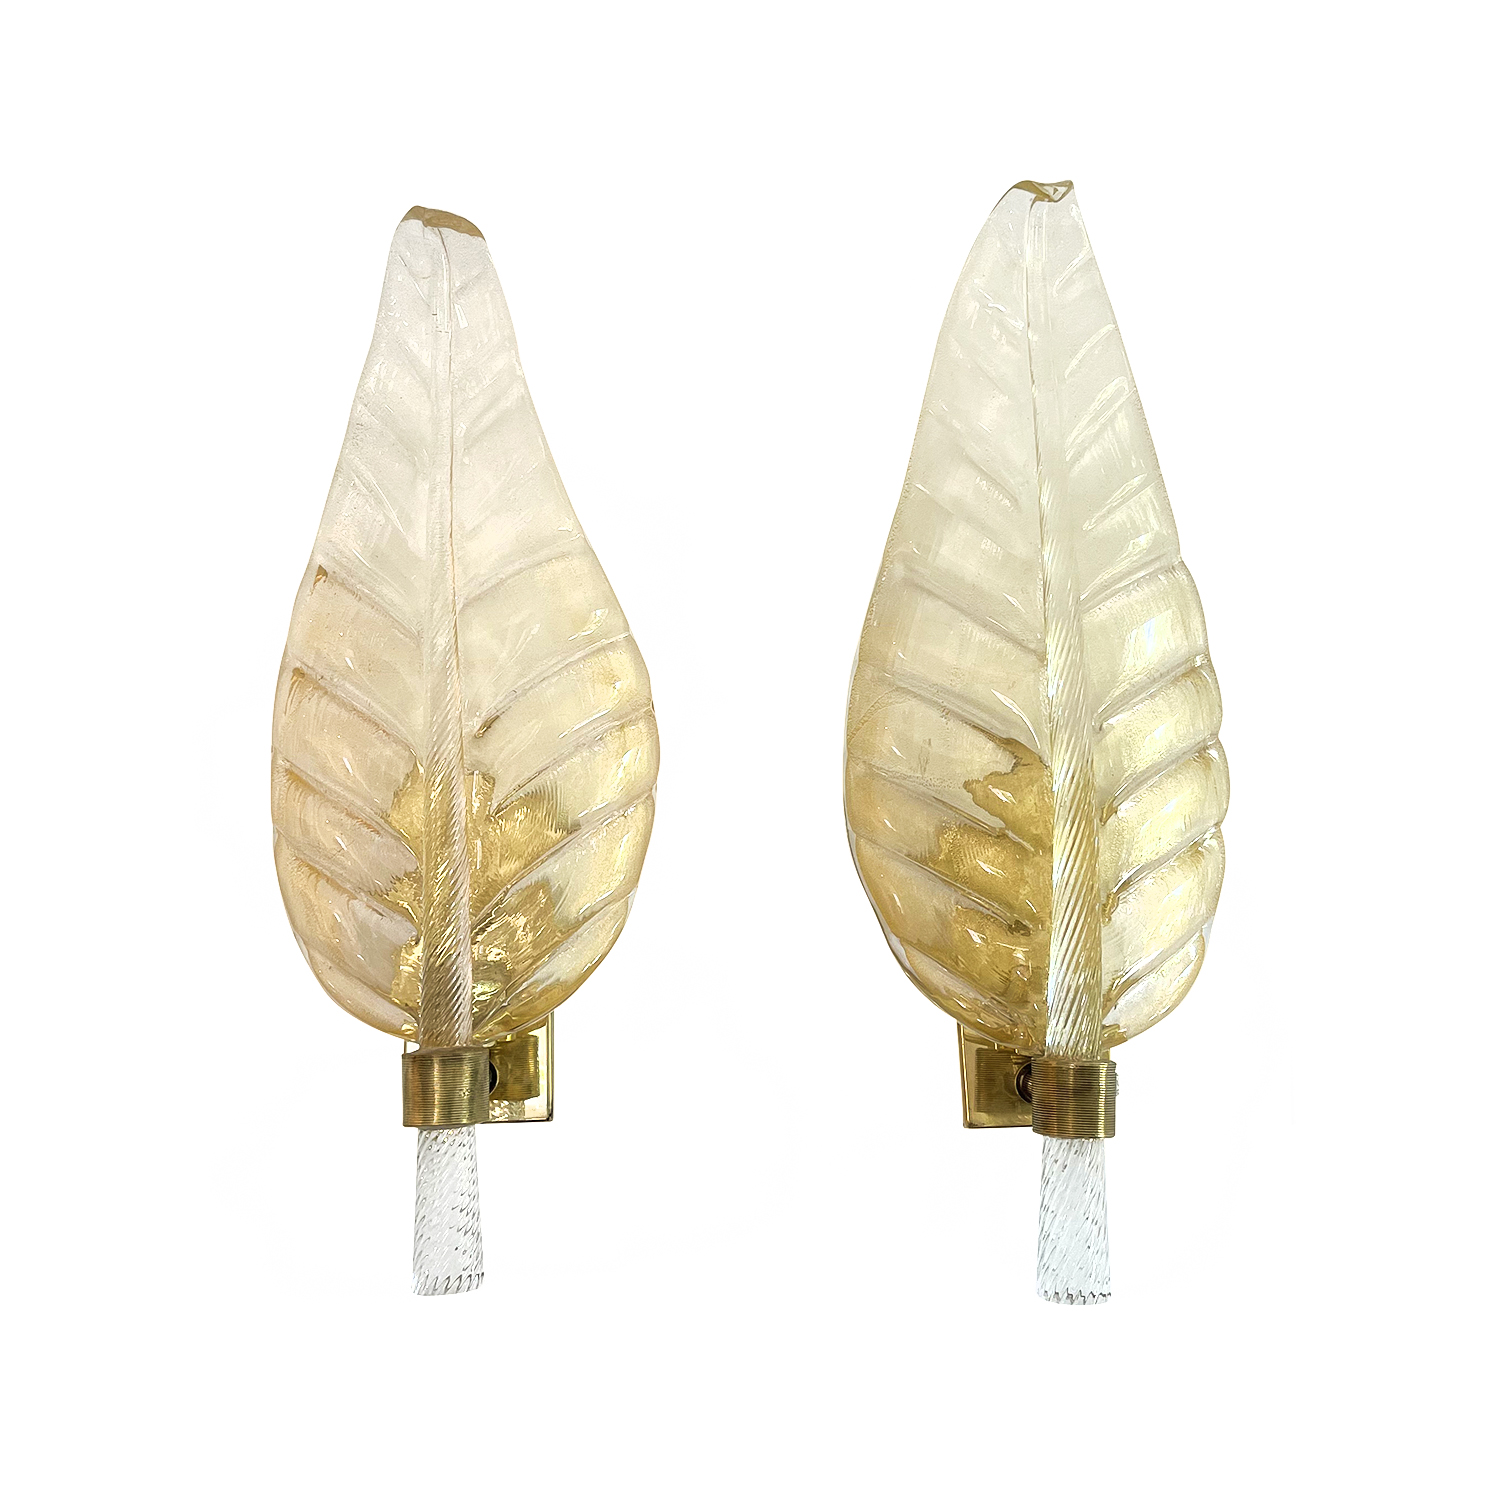 20th Century Italian Pair of Murano Glass Oro Sommerso, Brass Leaf Wall Sconces